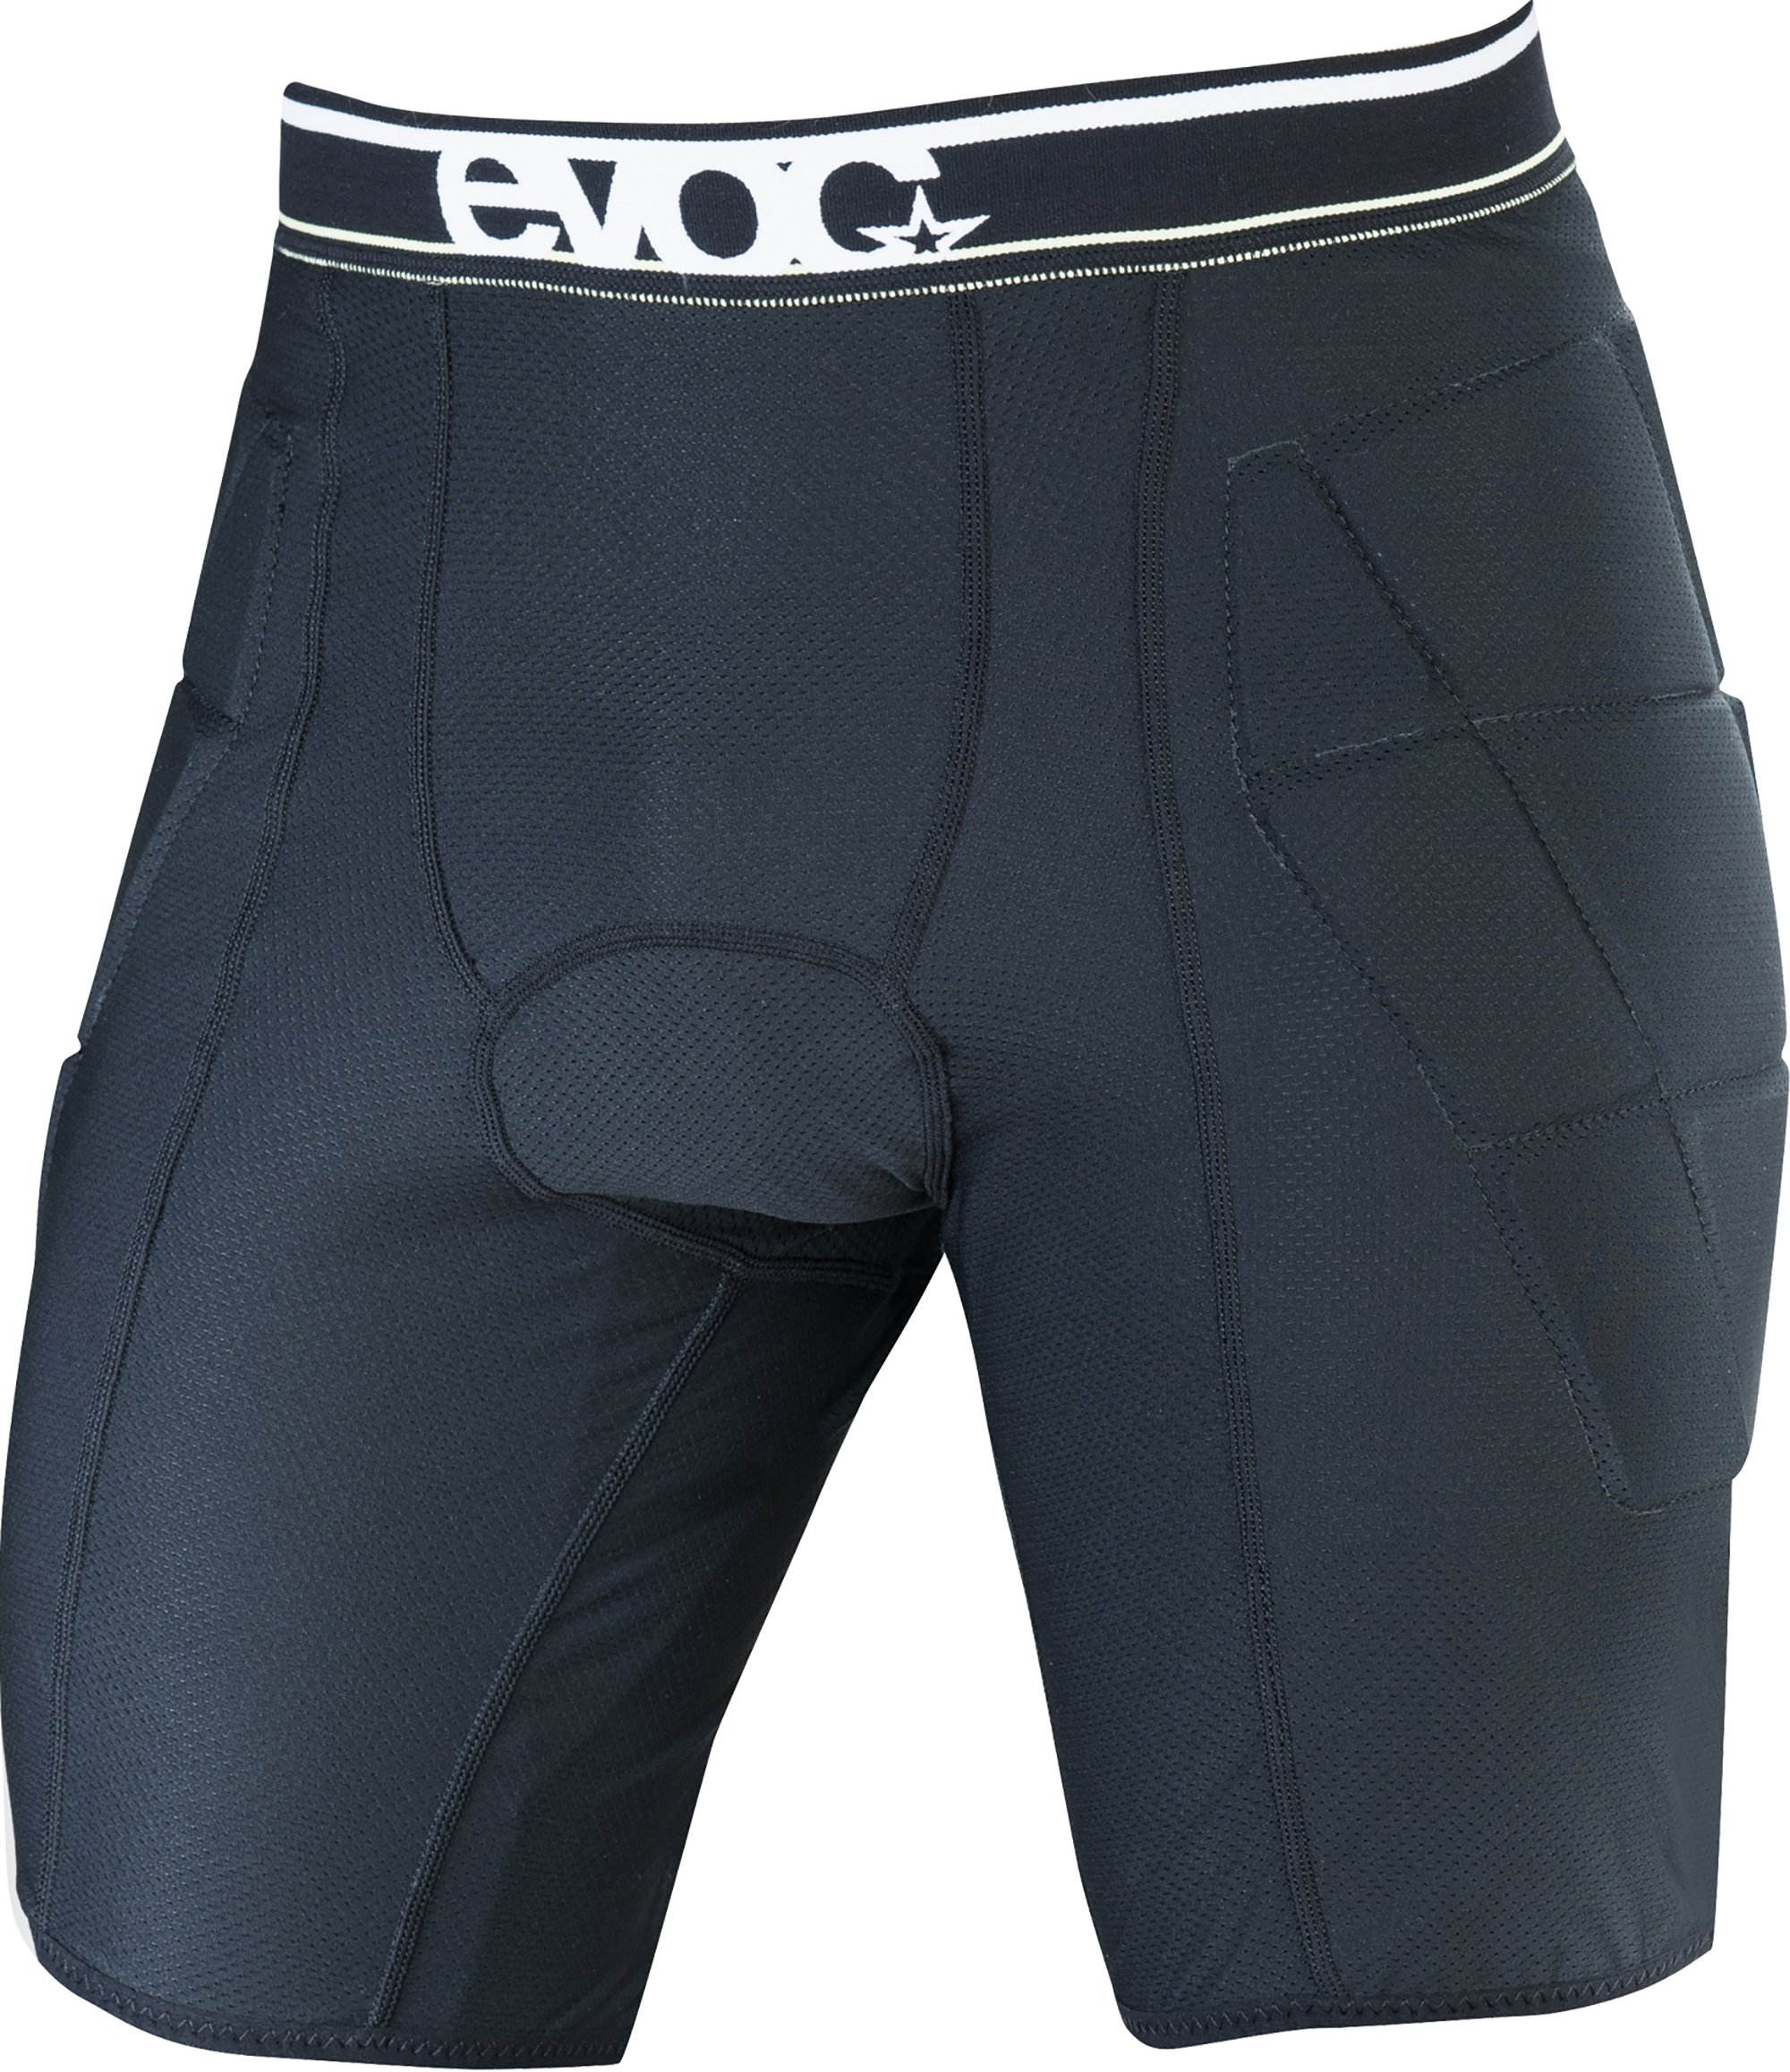 EVOC Sports Crash Pants, Black, Medium